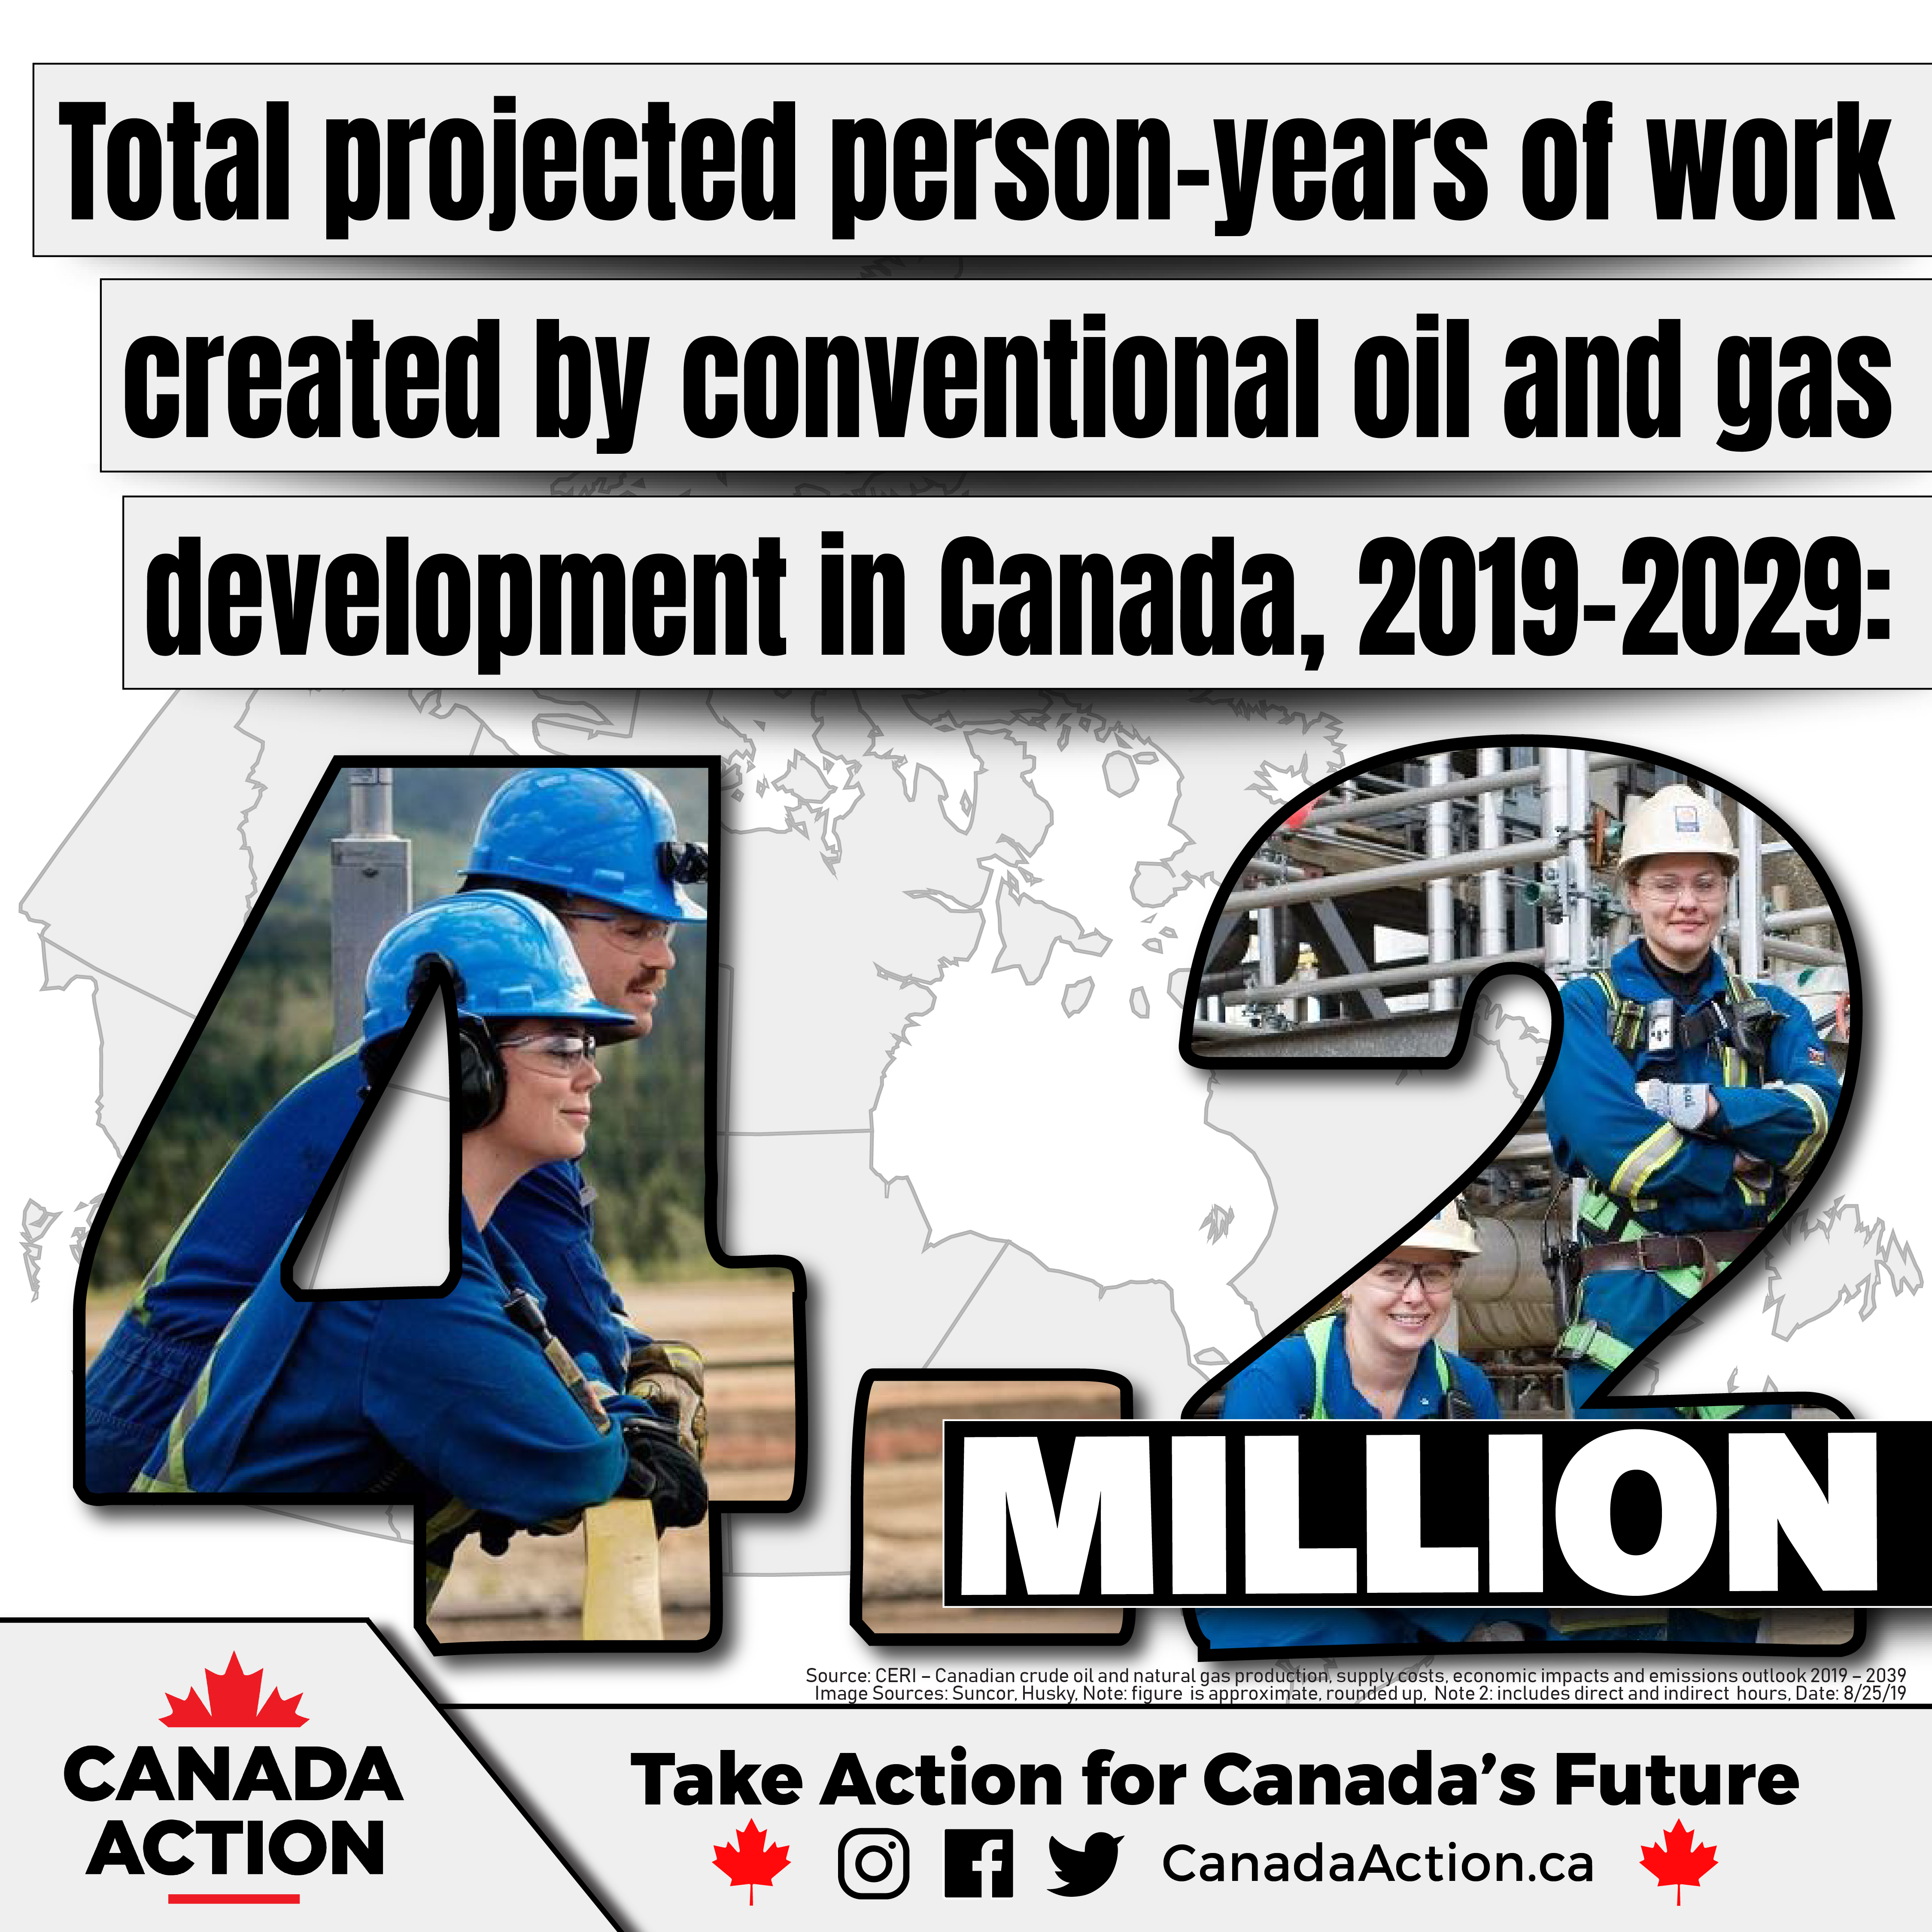 Person-years of employment resulting from conventional oil and gas development in Canada - 2019-2029